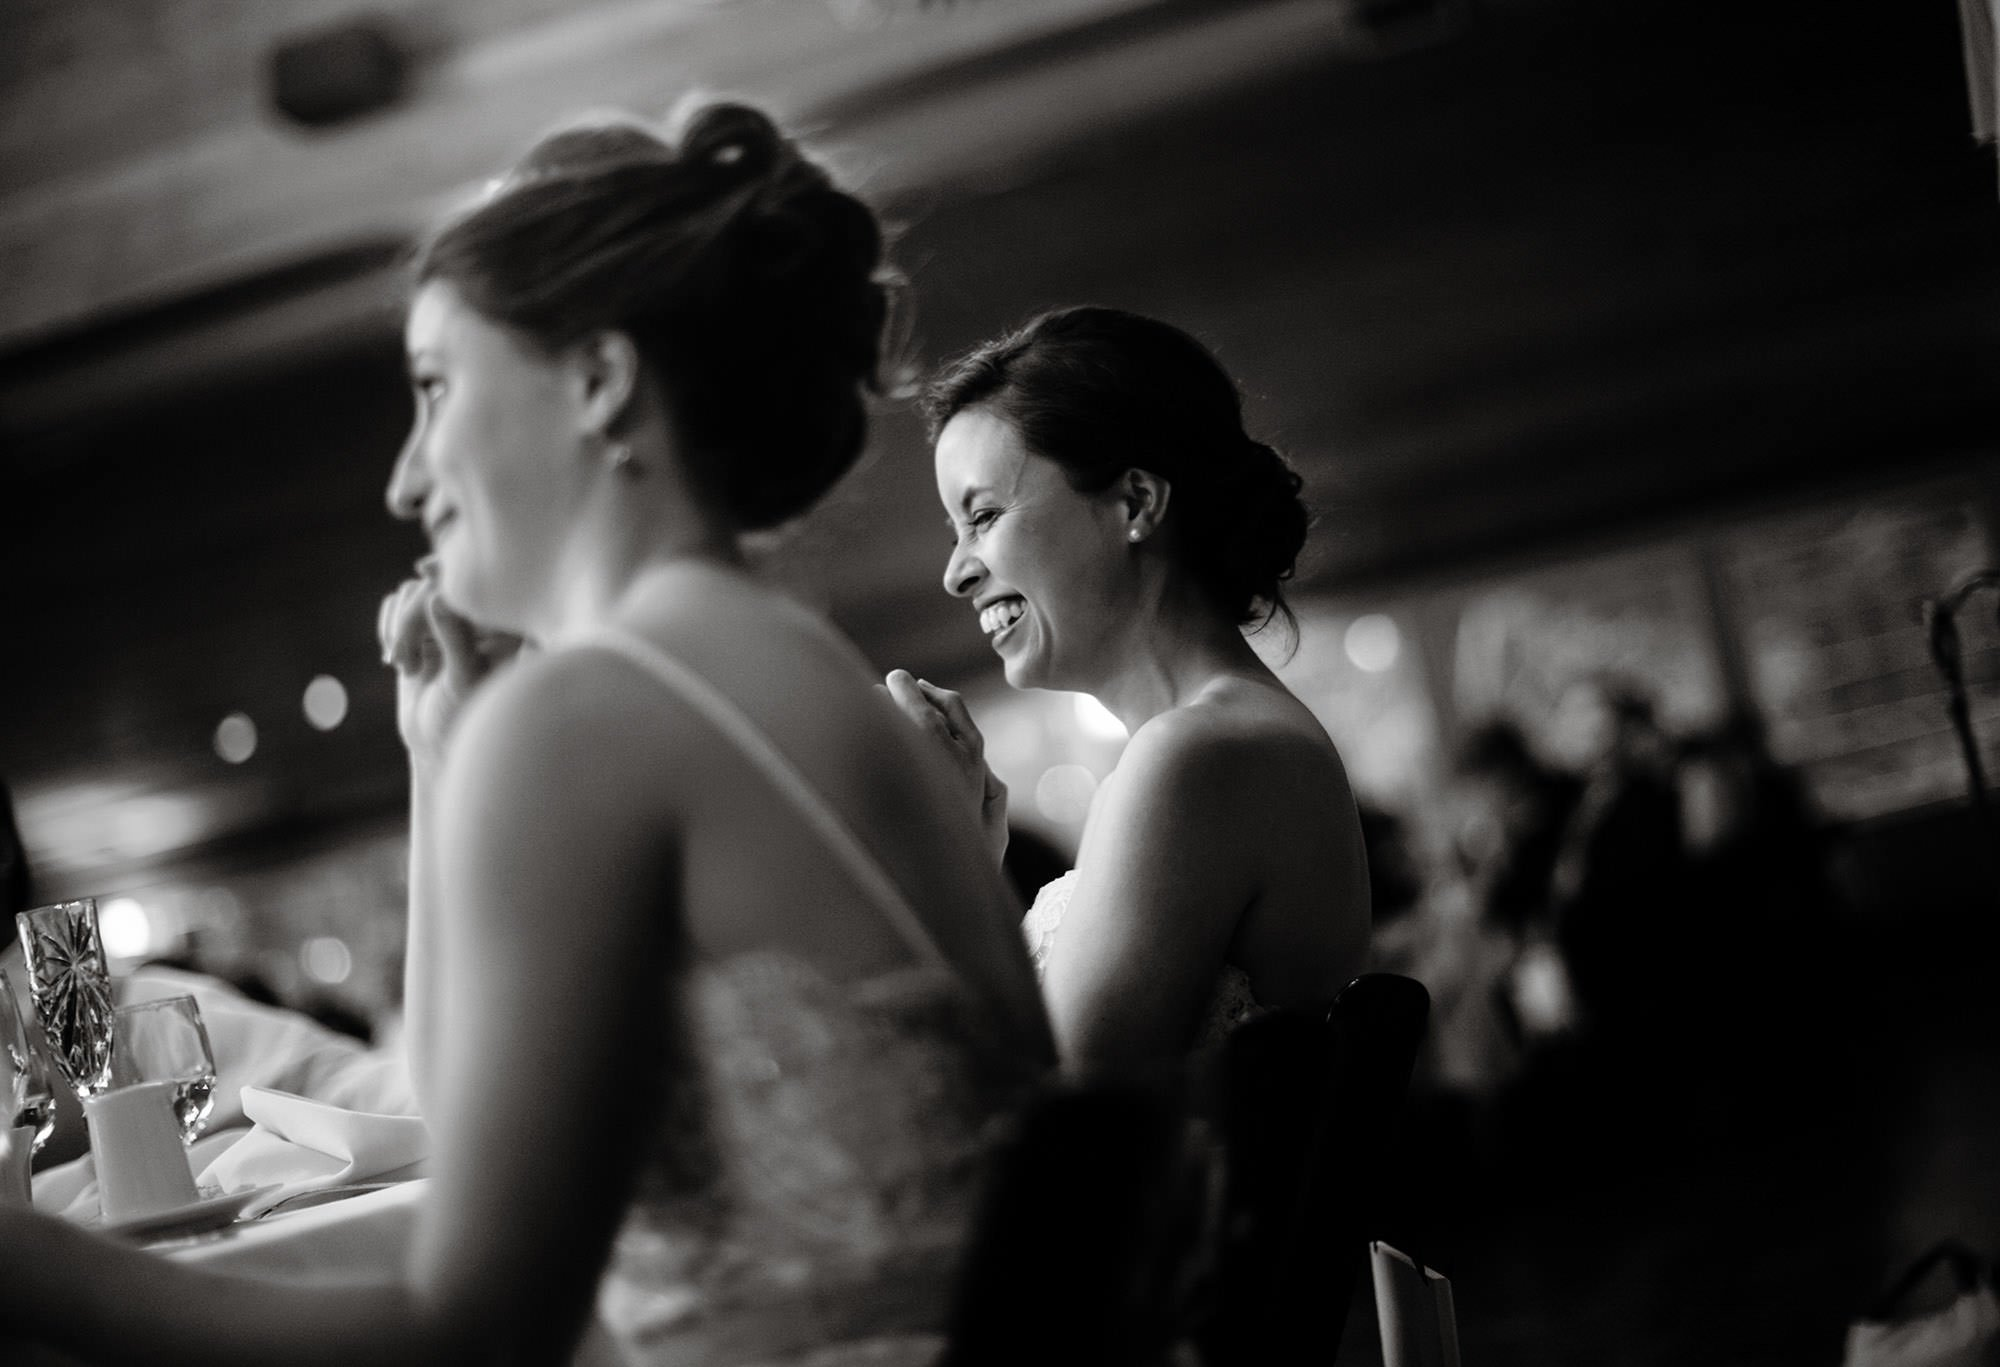 The brides enjoy the toasts during the wedding reception.